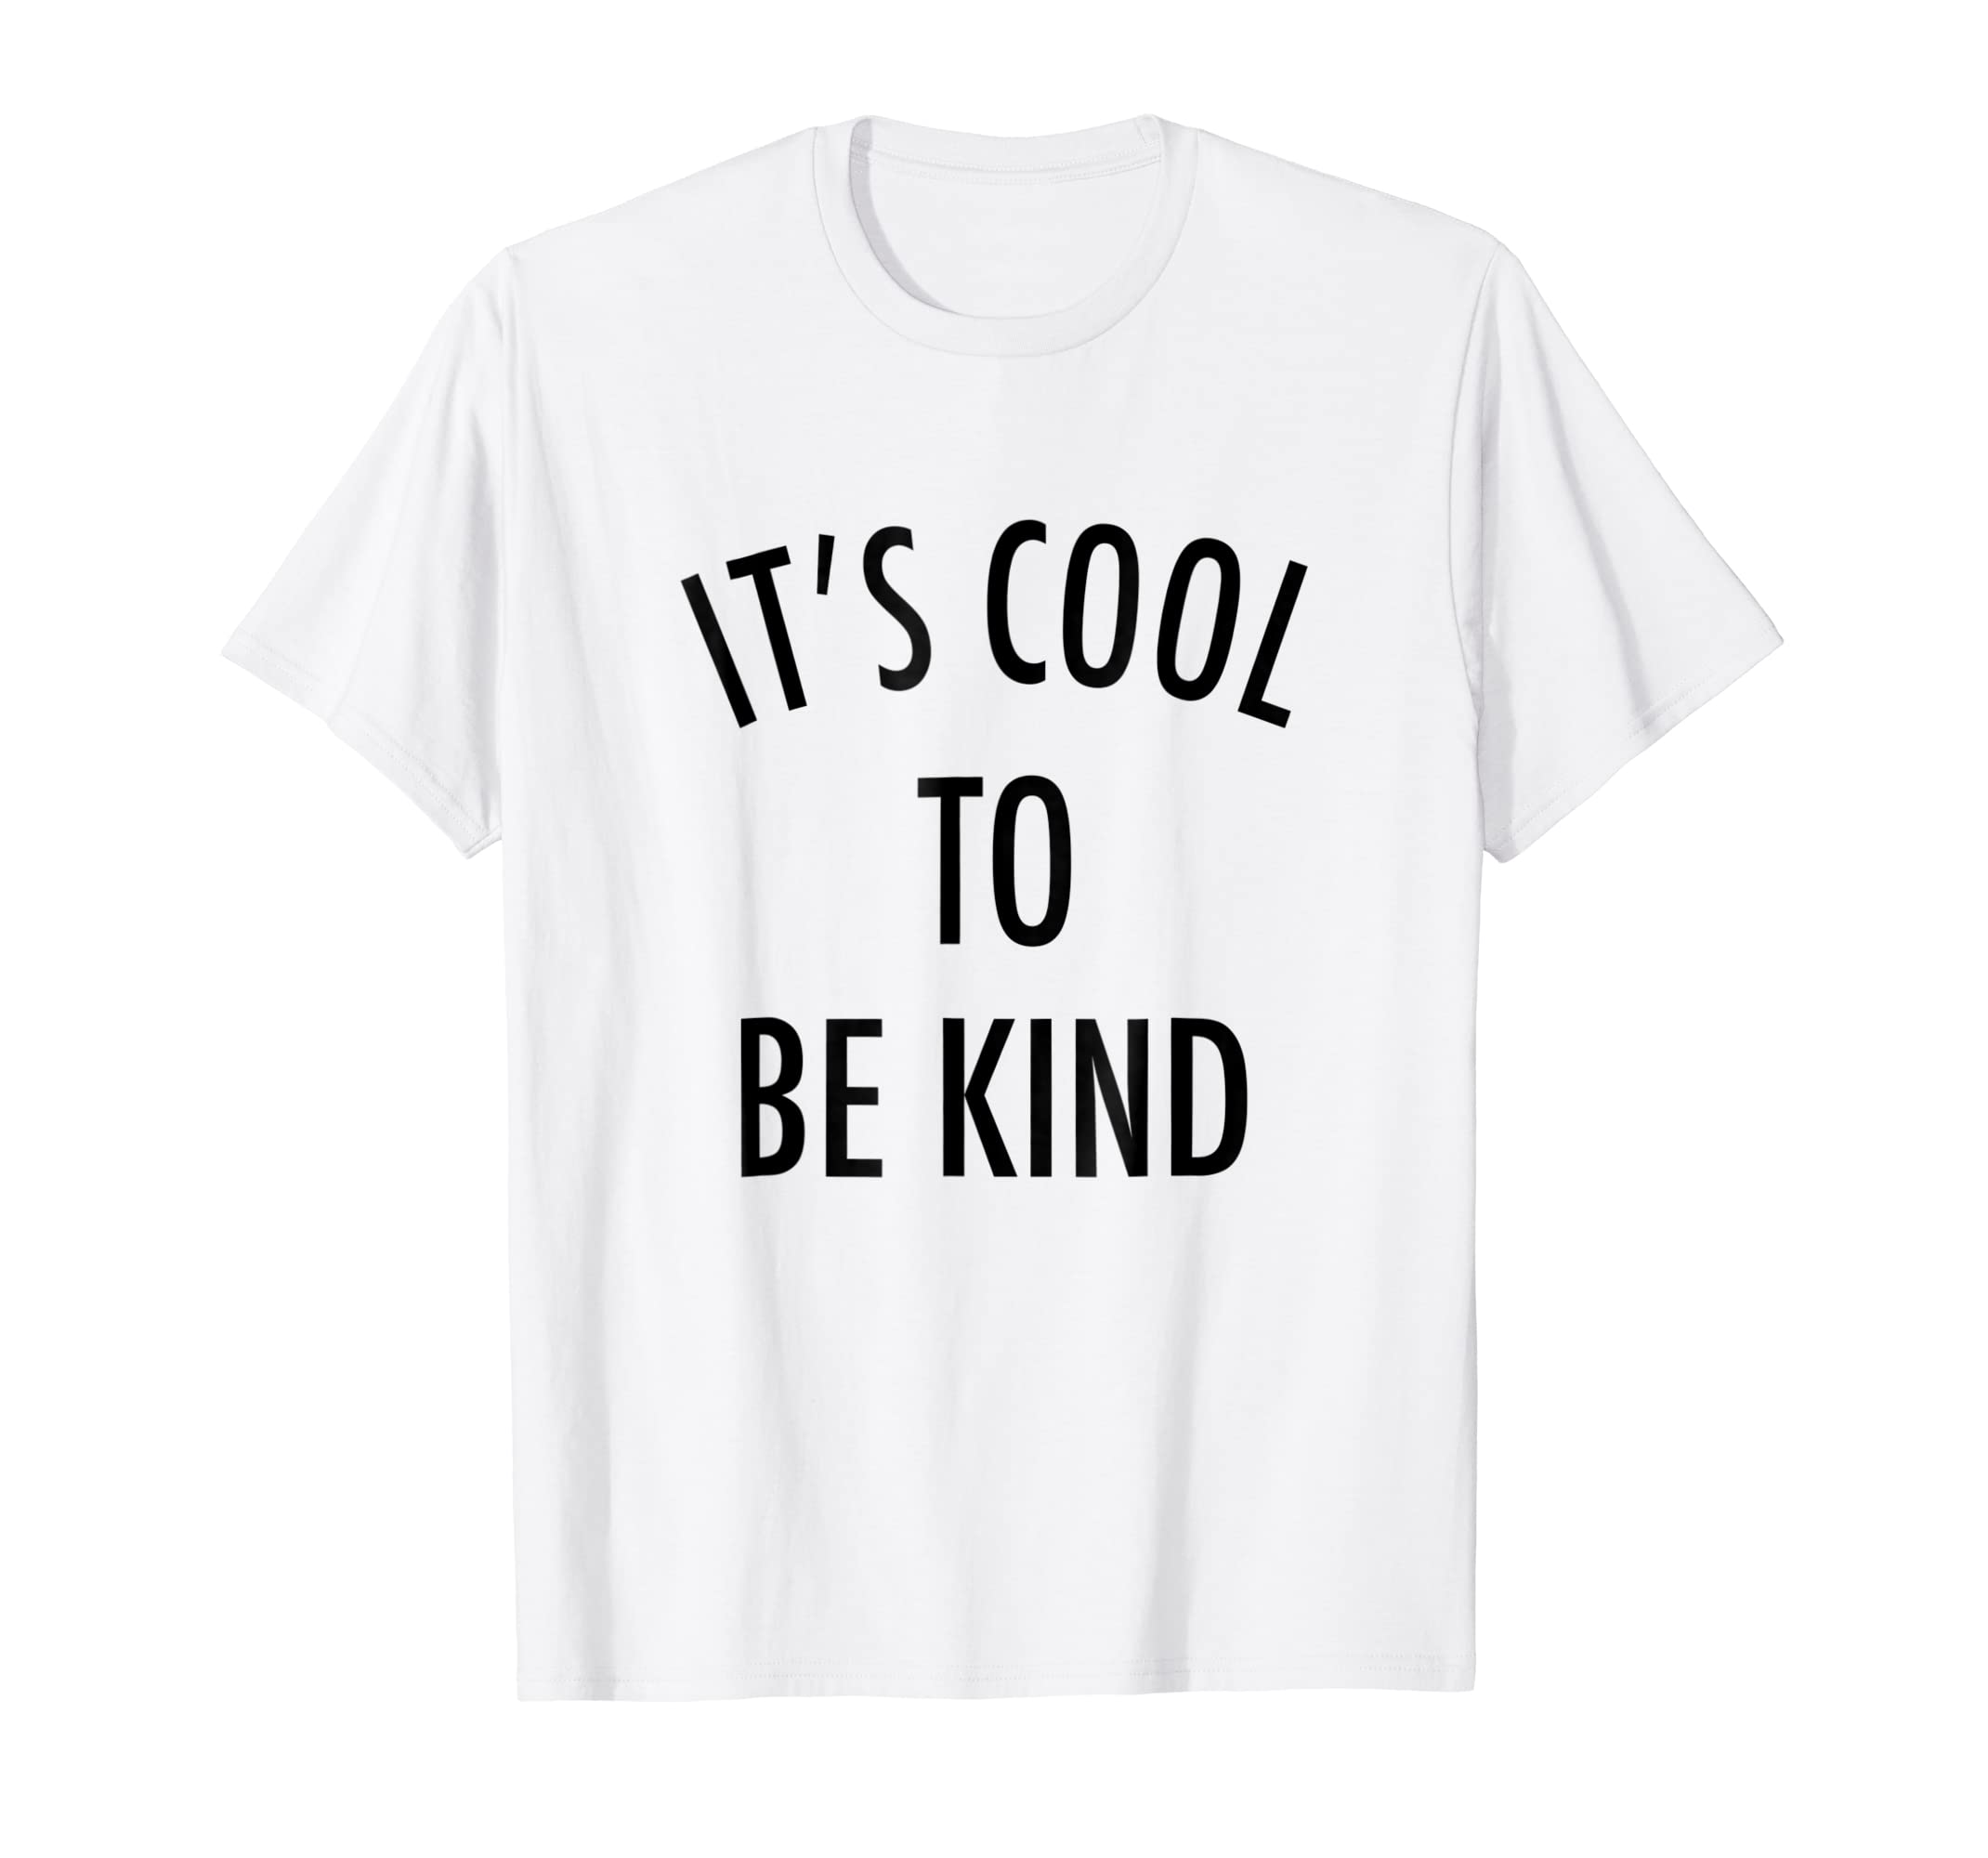 0a591b9d Amazon.com: It's Cool To Be Kind - Uplifting Motivational Slogan T-Shirt:  Clothing